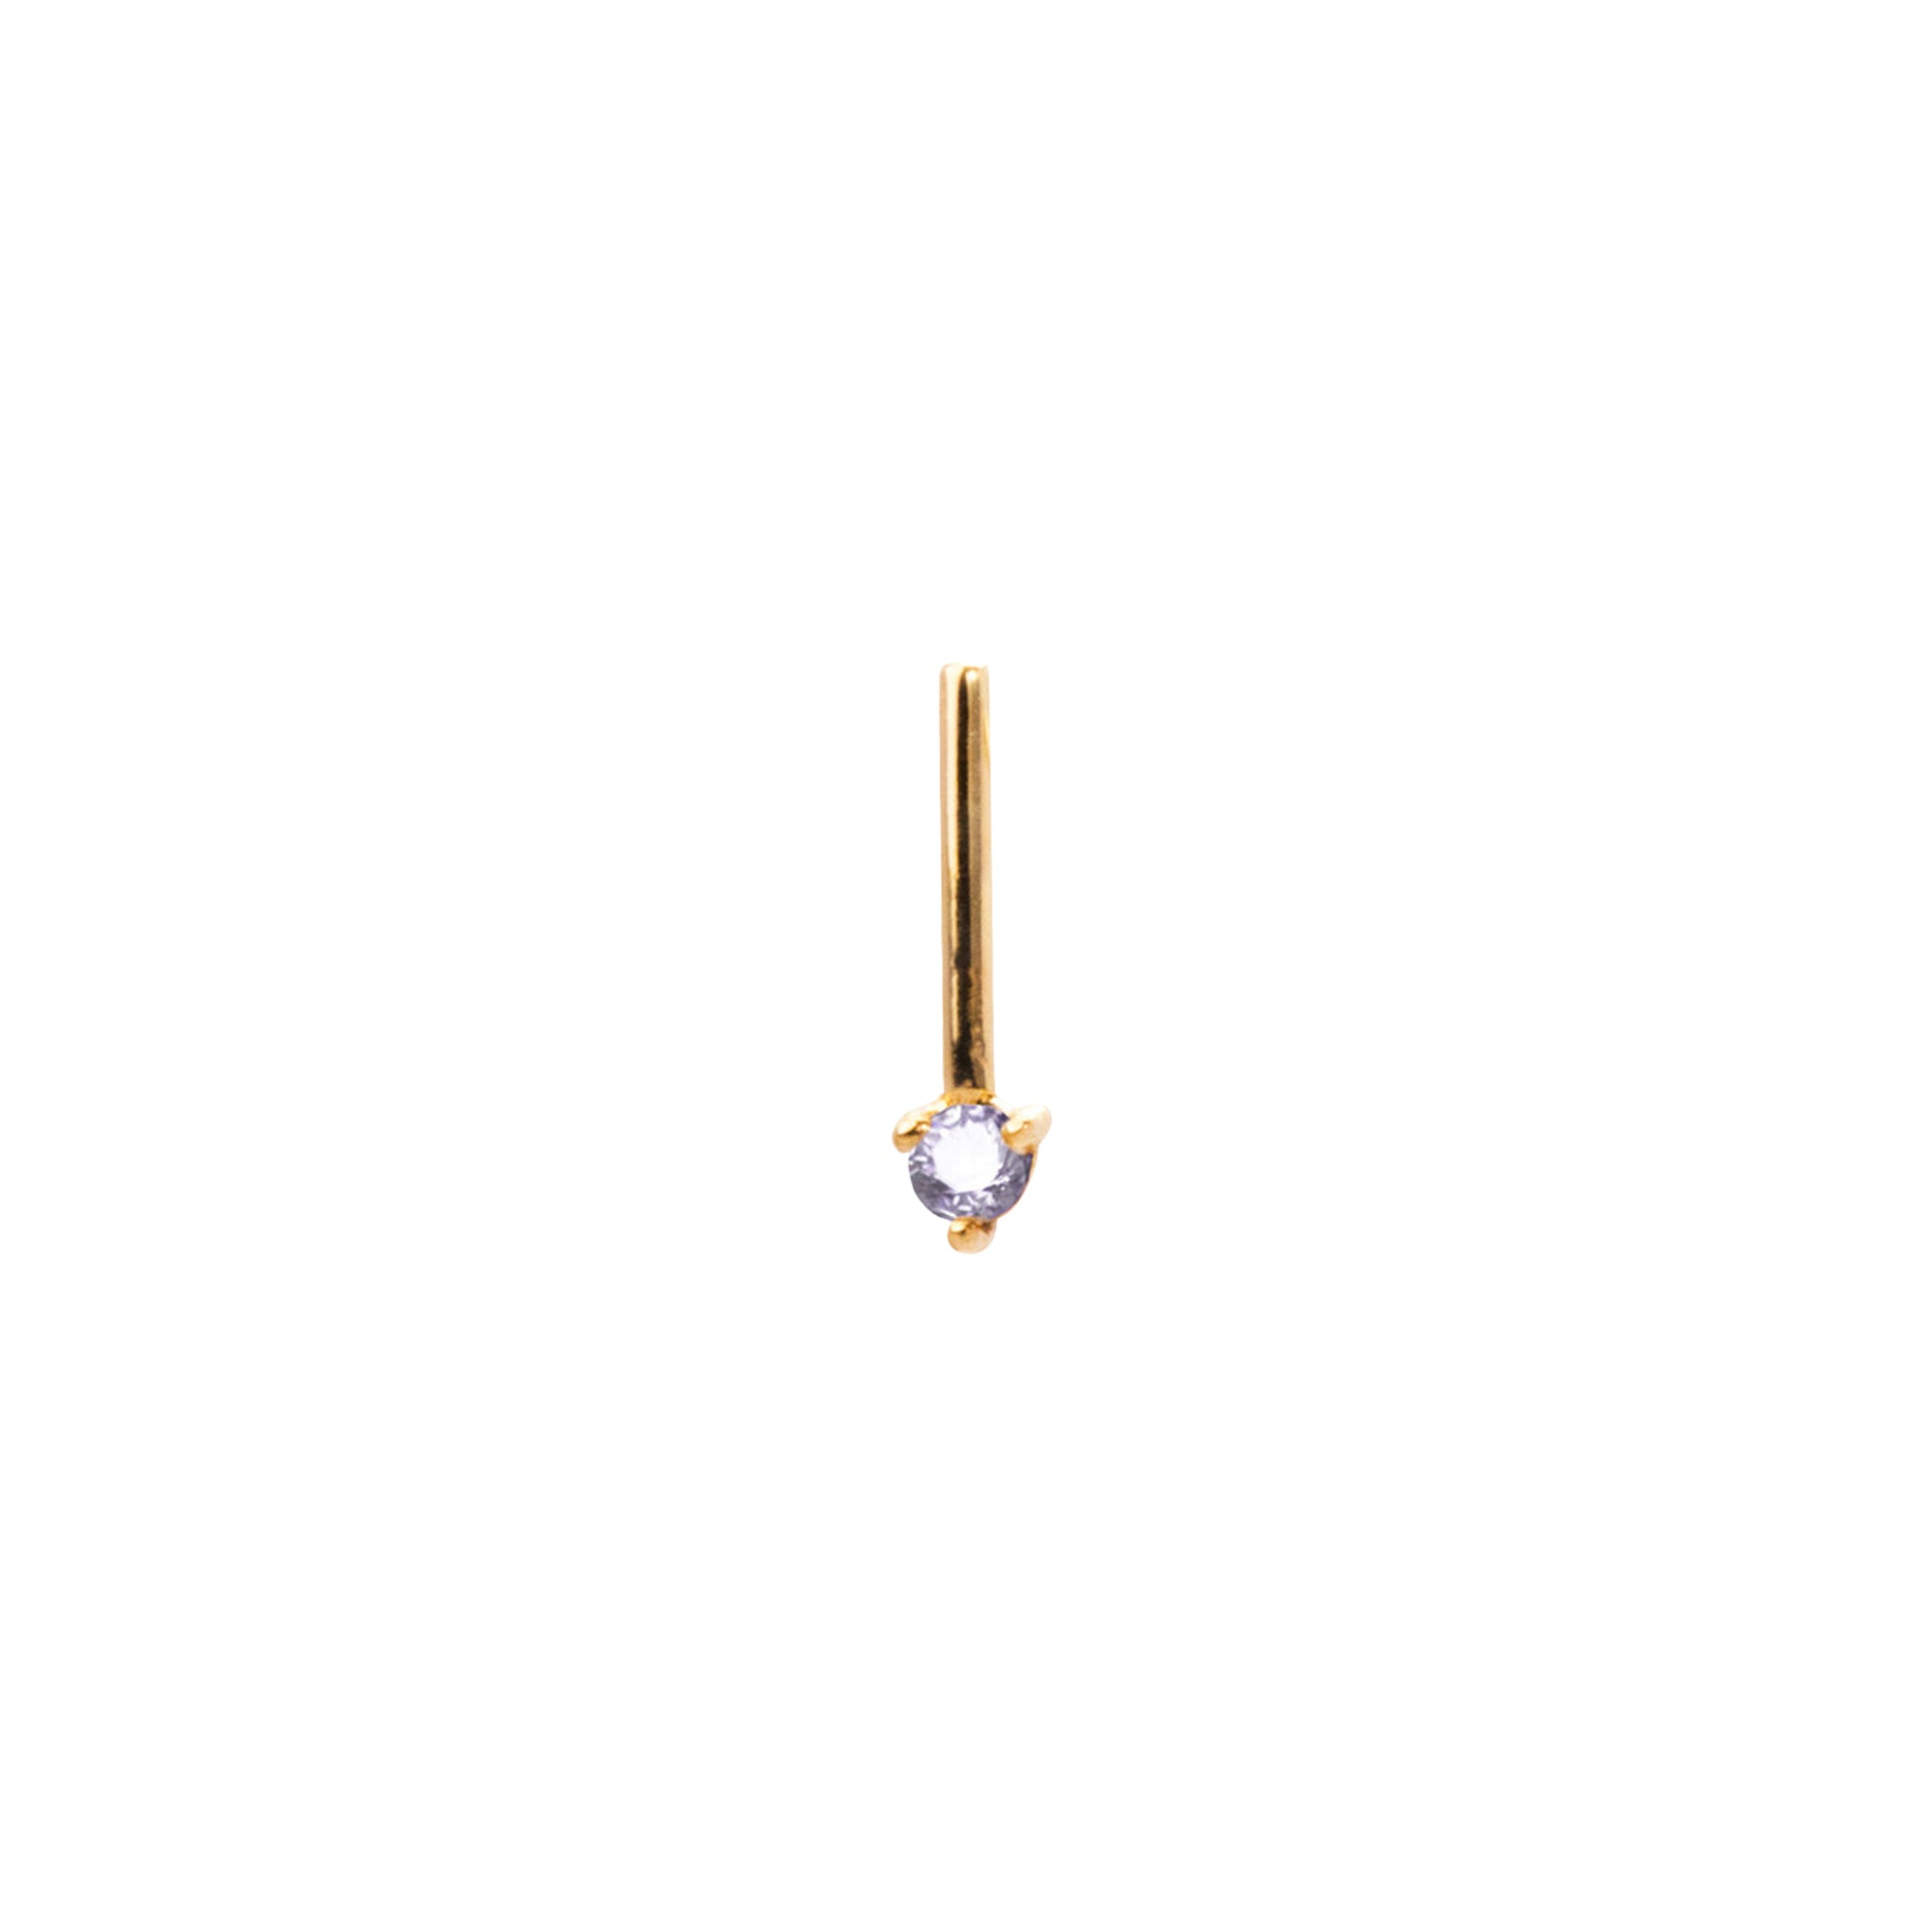 Gold White Diamond One Step Bar Earring by Wwake for Broken English Jewelry